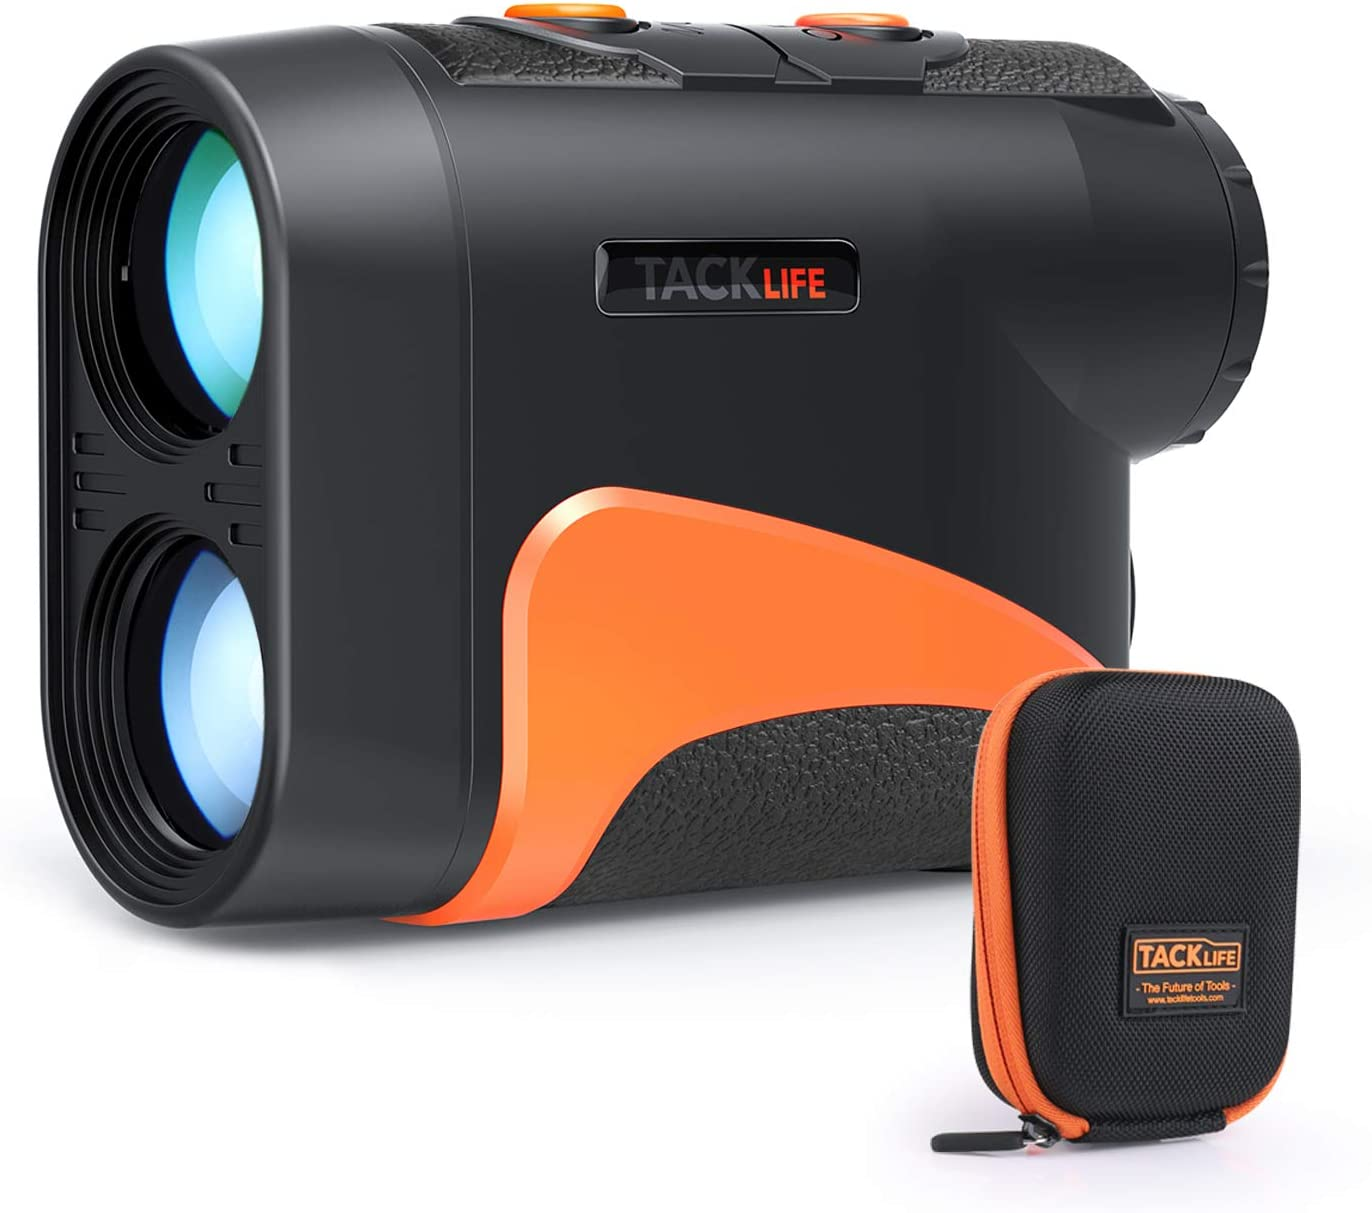 TACKLIFE Golf Rangefinder with Slope Pin Range Scanning Model, Laser Range Finder 6X with Wrist Strap, Carrying Bag for Golf Training, Competition, Hunting – MLR04